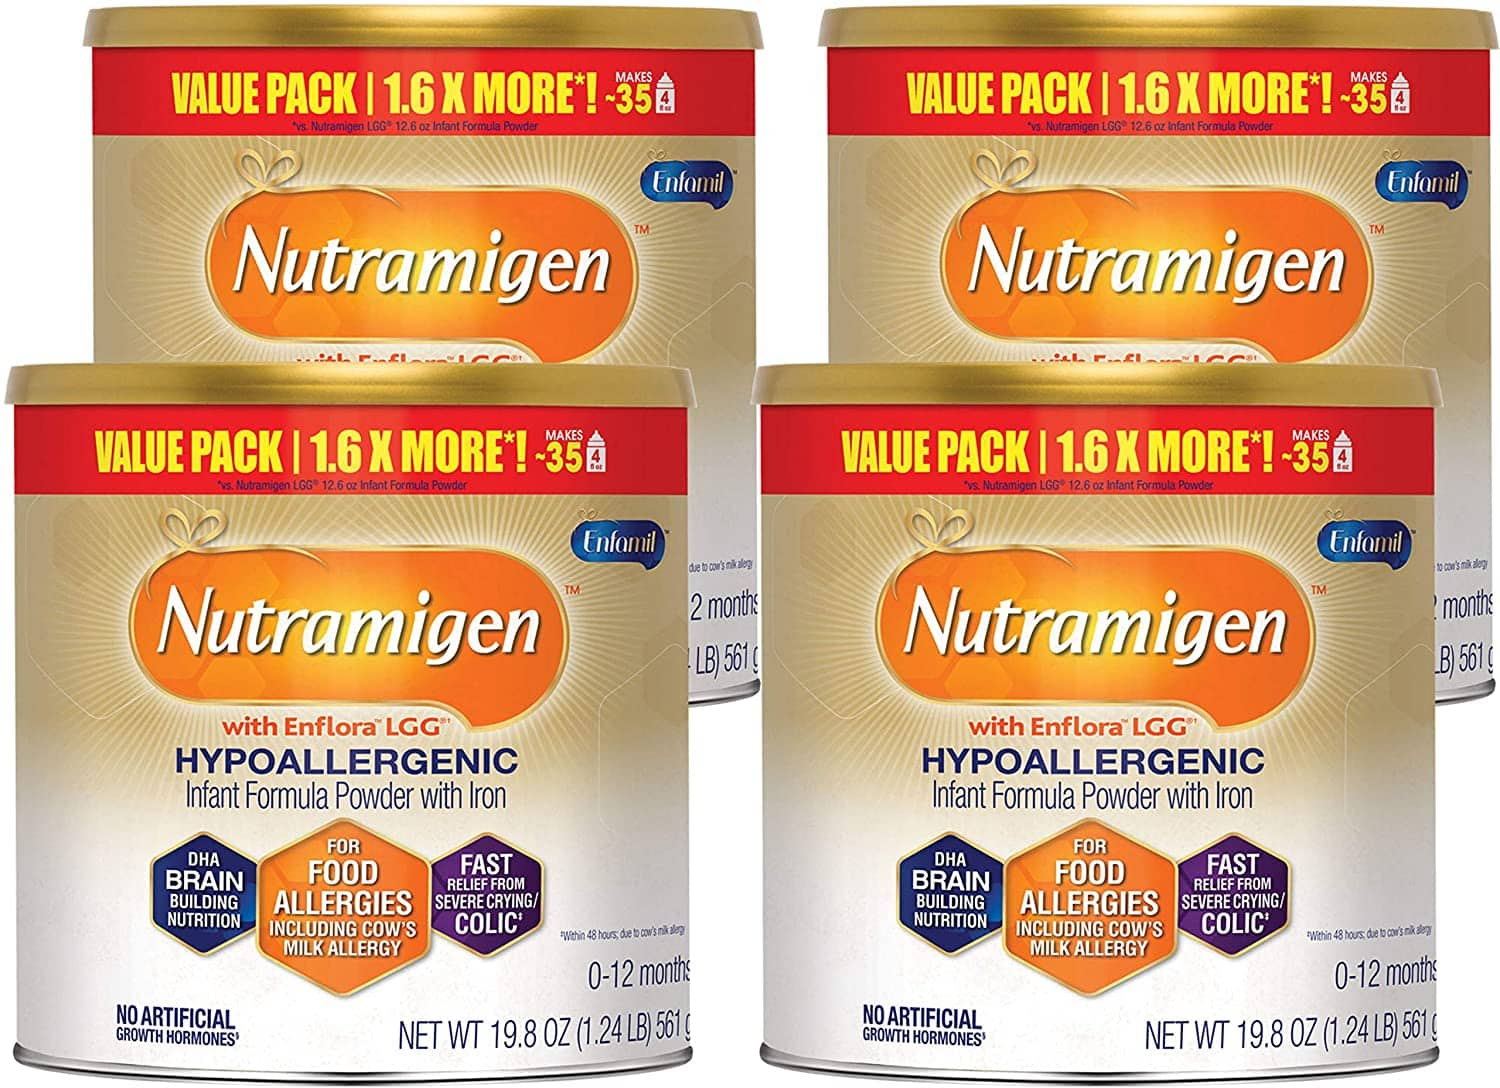 Amazon.com: Enfamil Nutramigen Infant Formula - Hypoallergenic & Lactose Free Formula with Enflora LGG - Powder Can, 19.8 oz (Pack of 4): Health & Personal Care $118